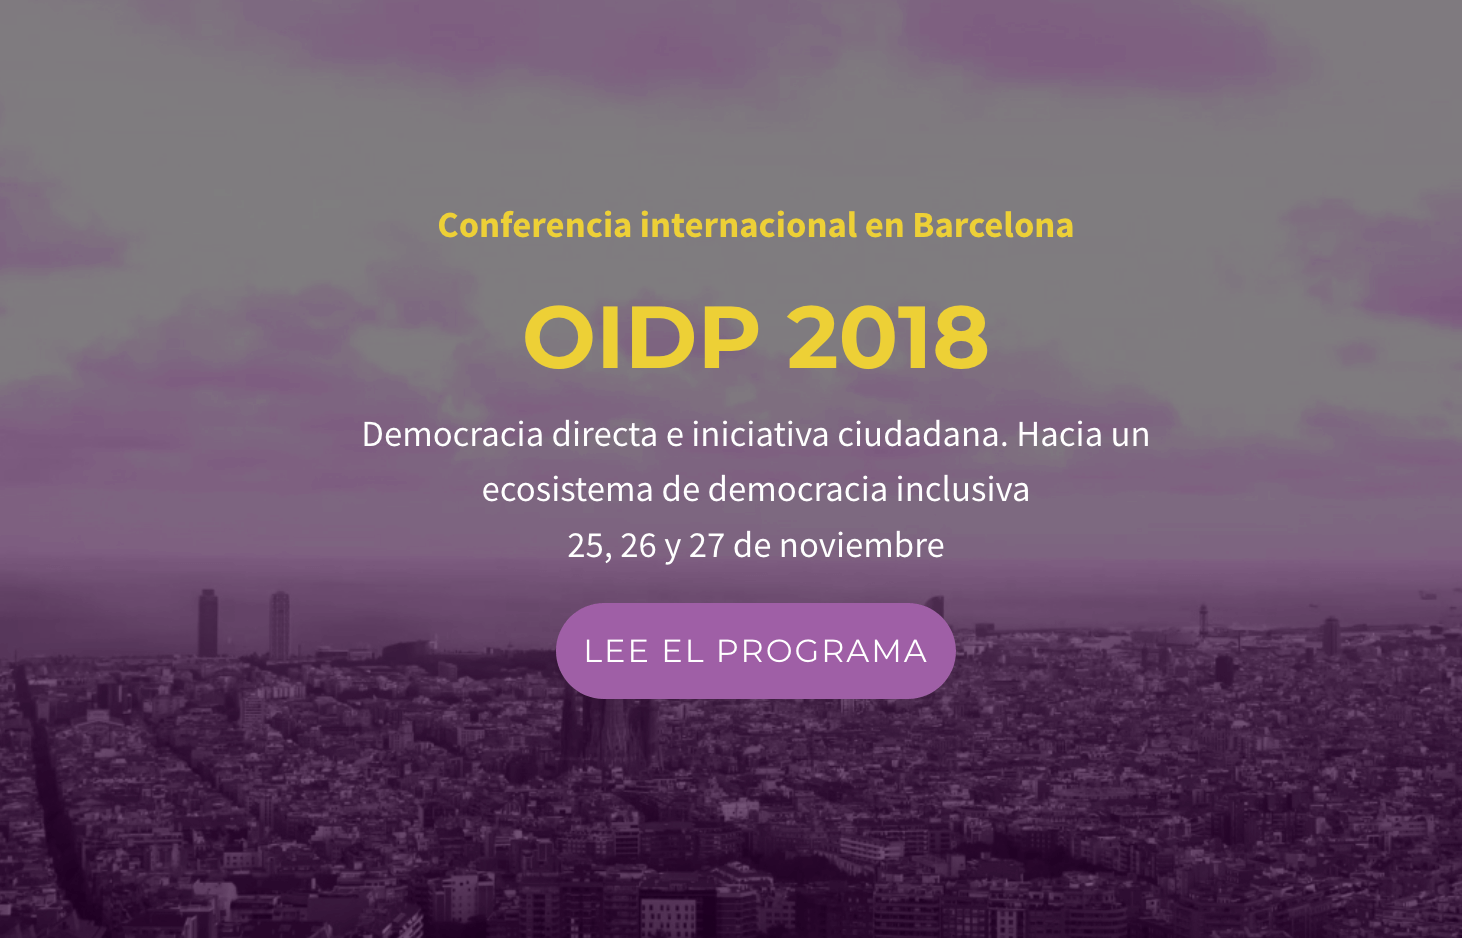 OIDP Conference 2018